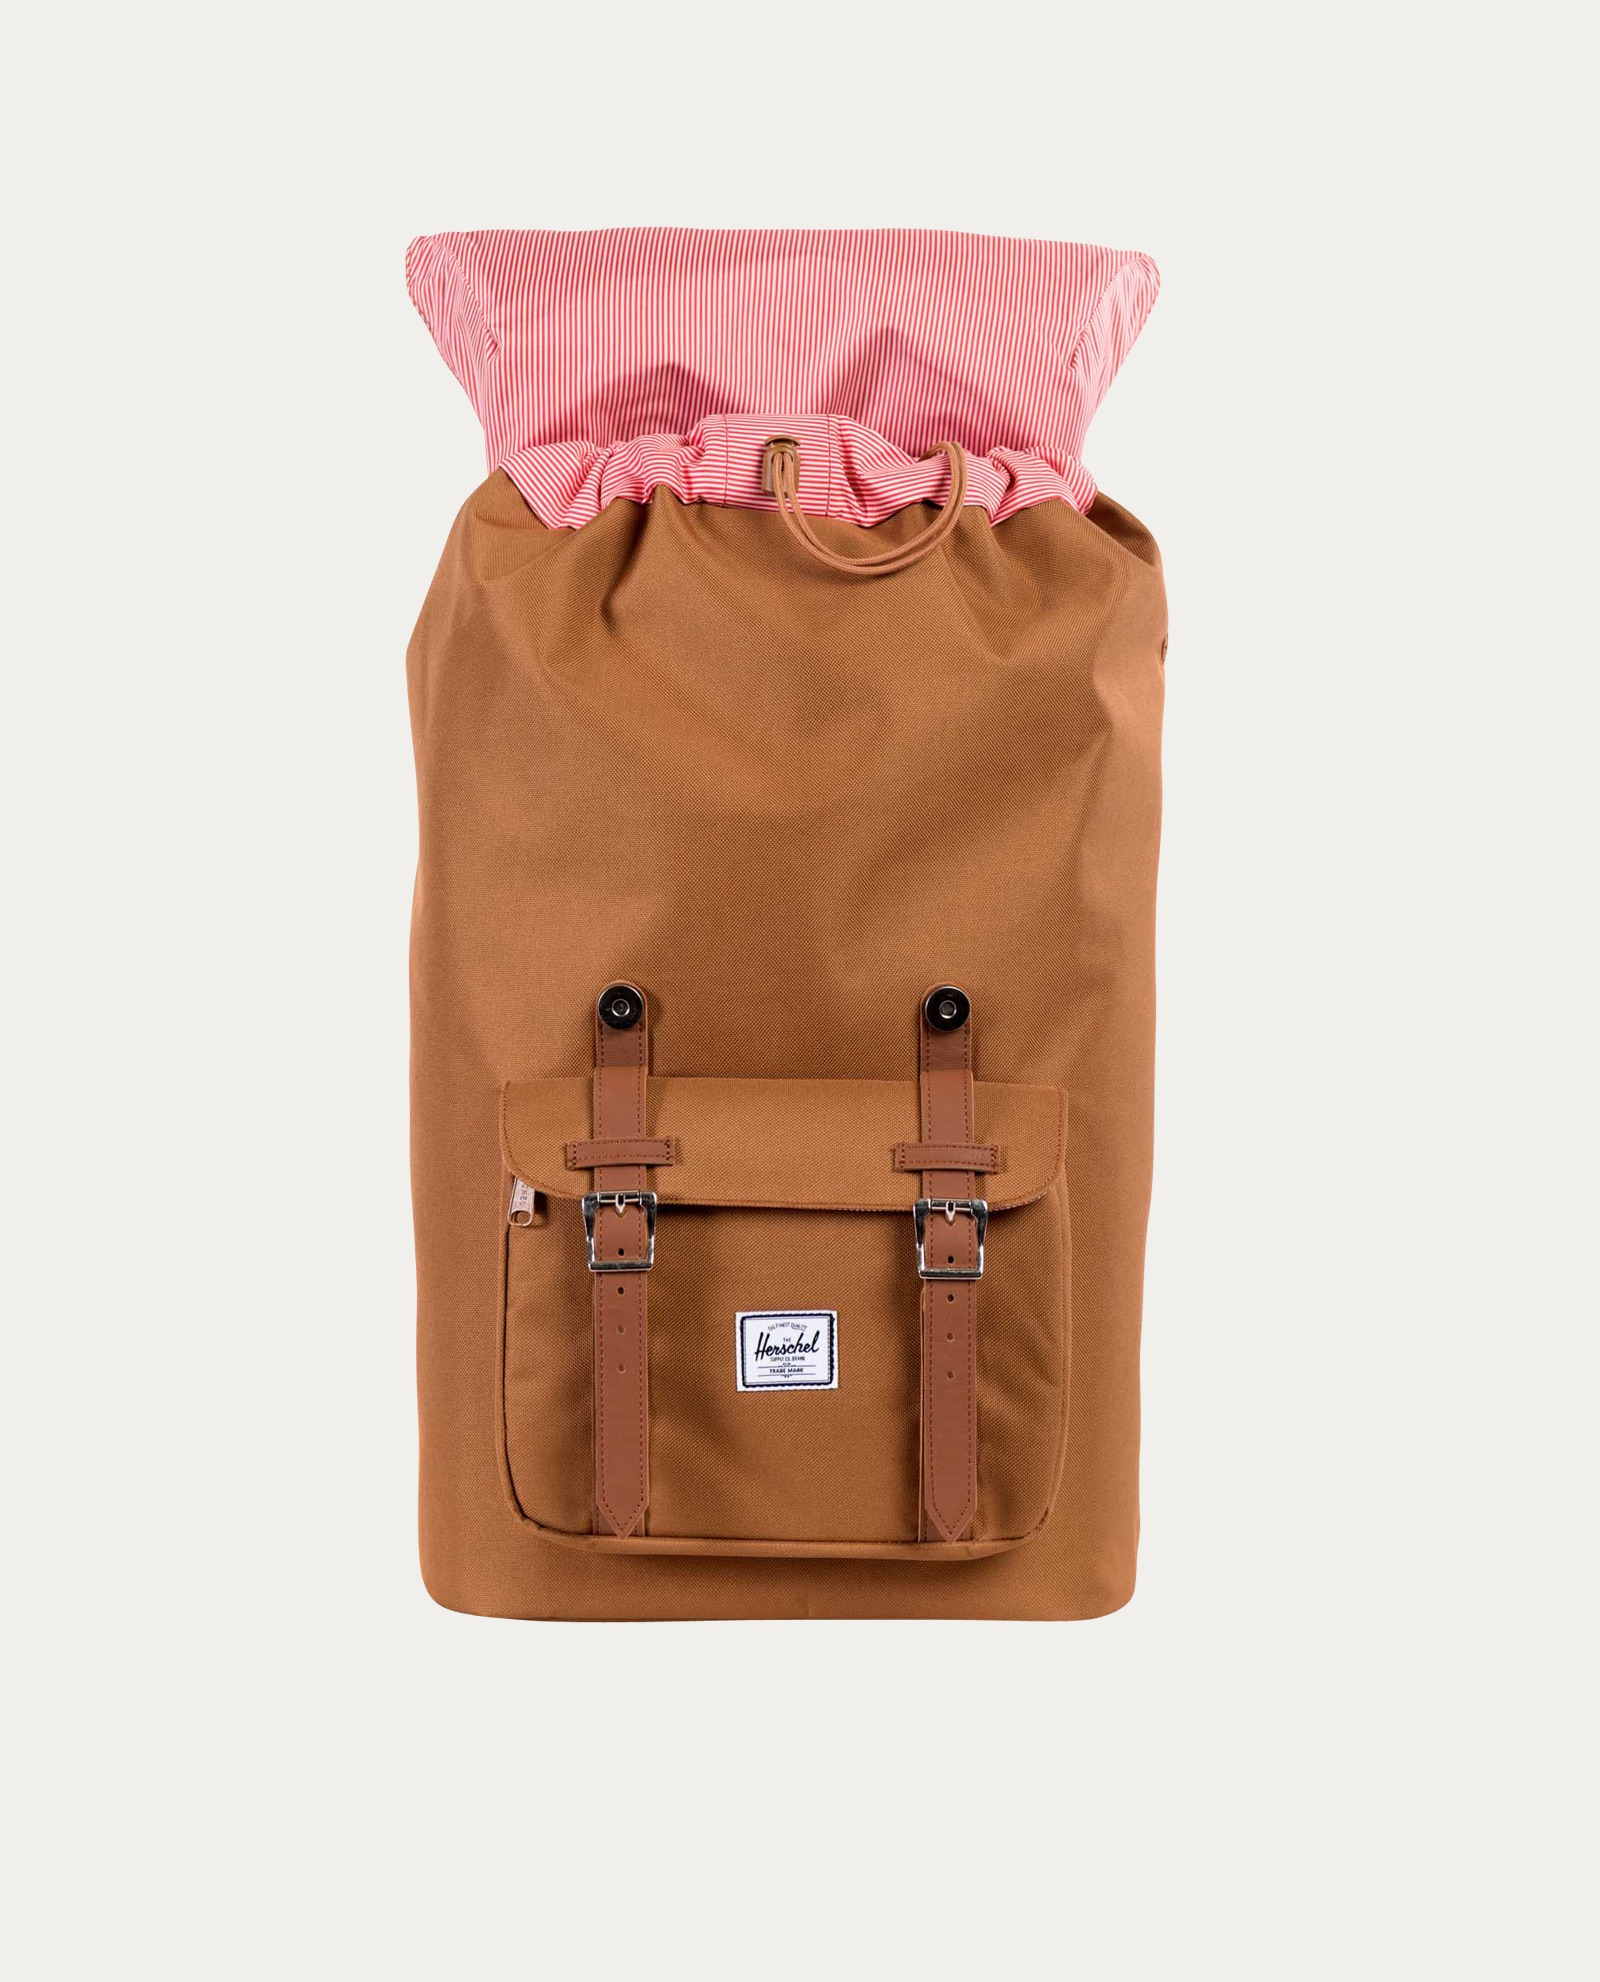 e813465f124 sac a dos herschel little america caramel 3.  sac a dos herschel little america windsor wine tan 1.  sac a dos herschel little america windsor wine tan 2